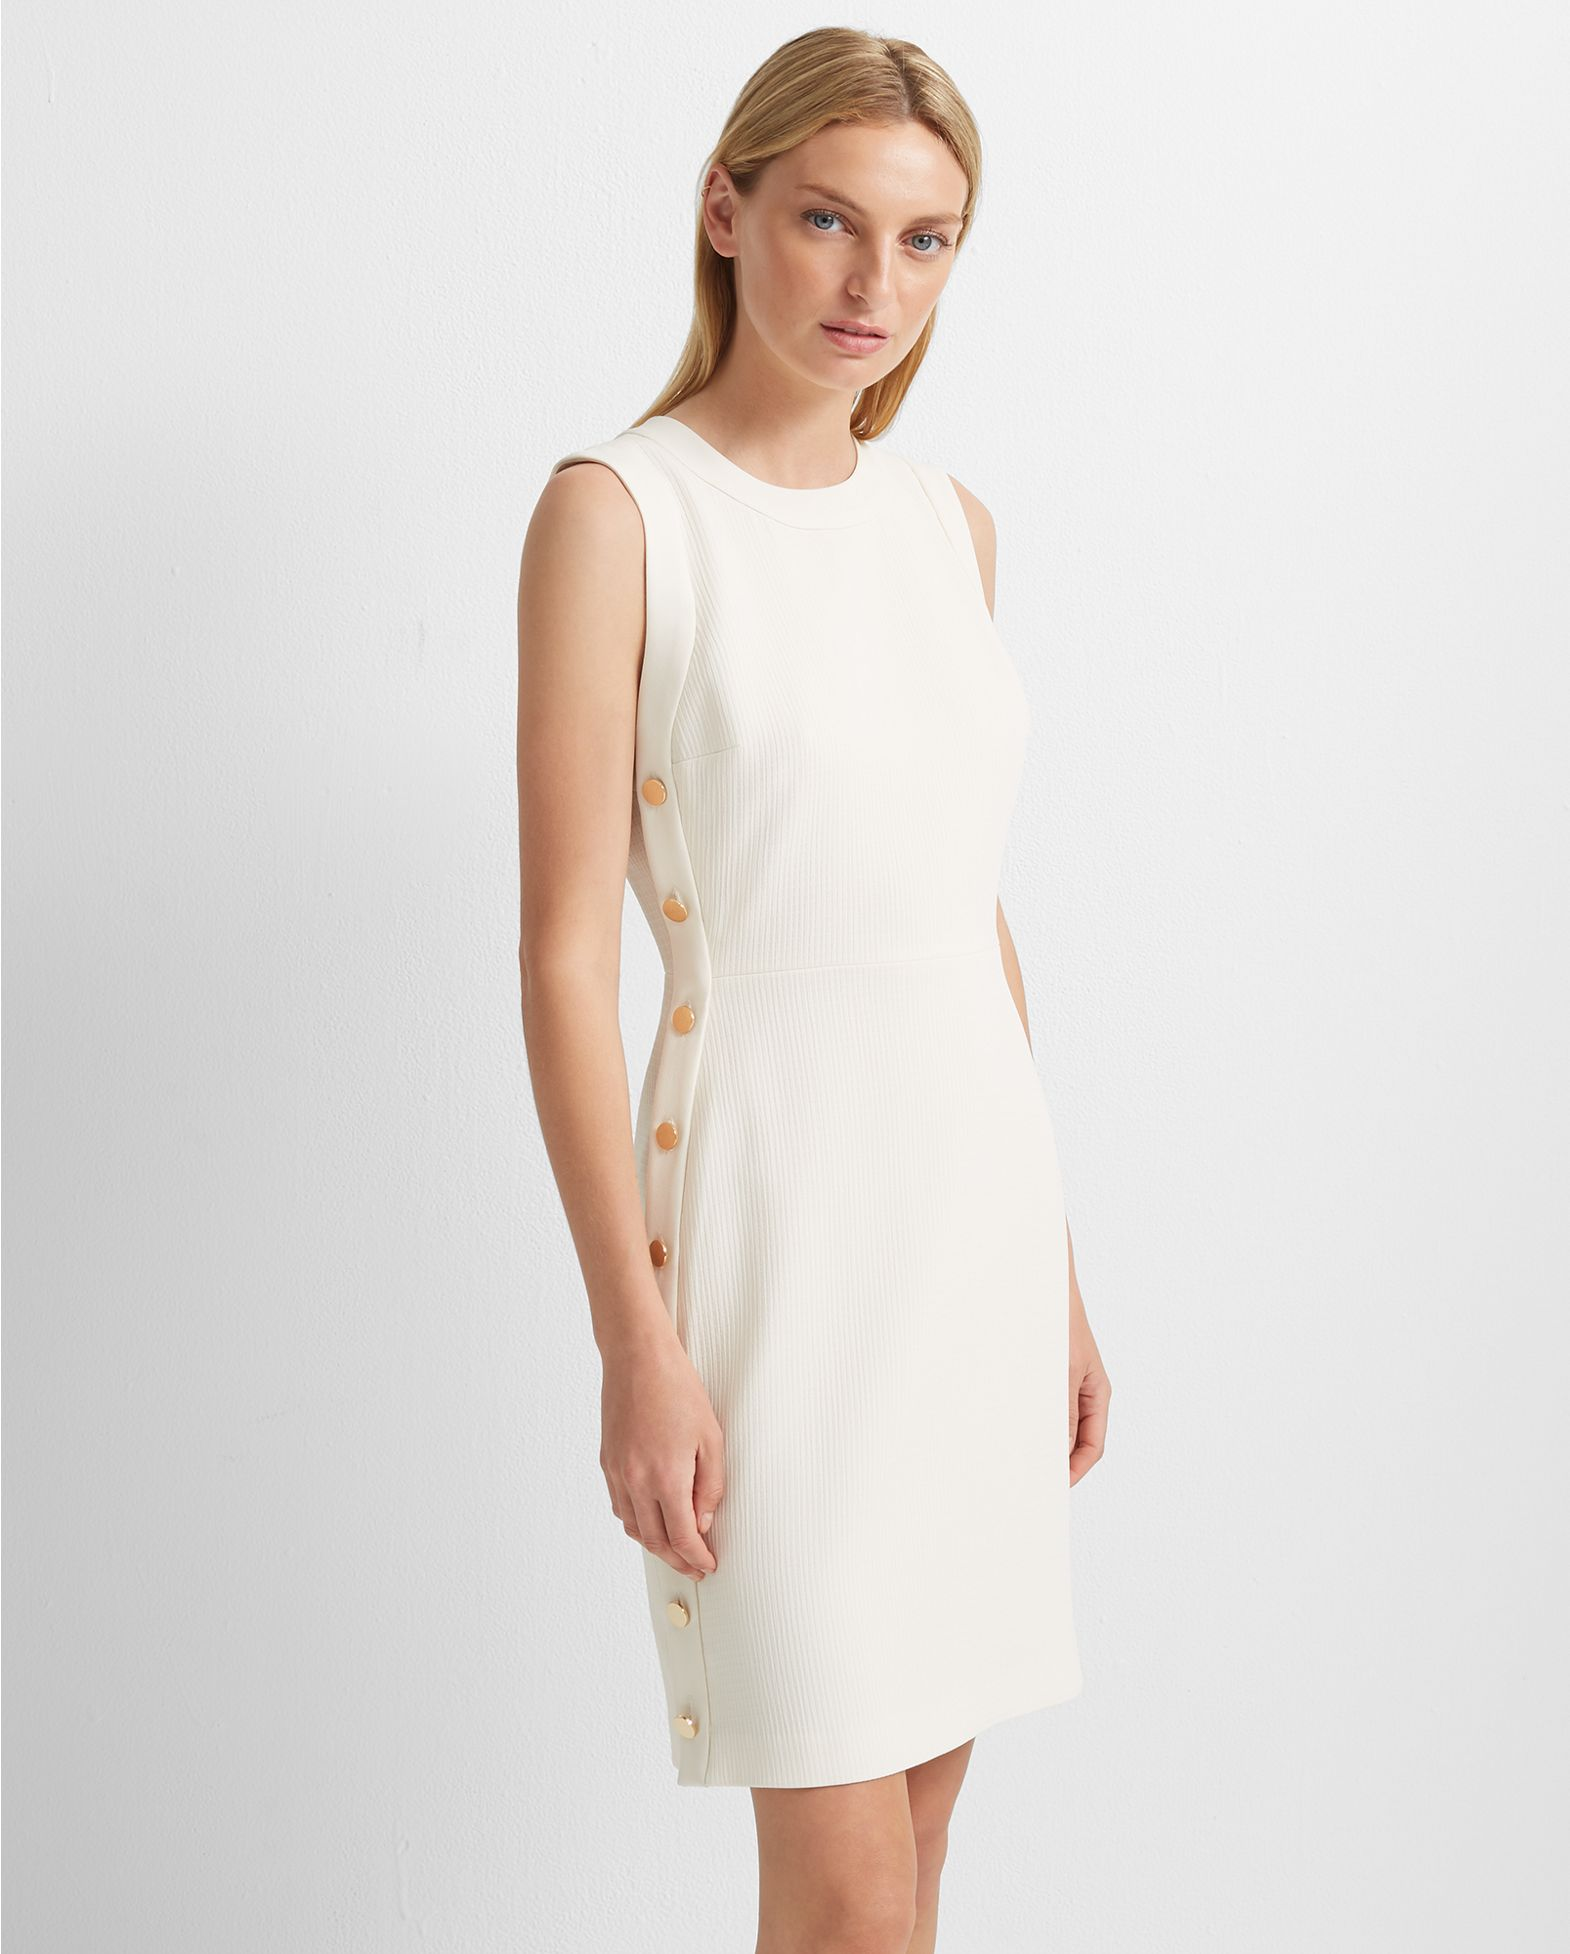 Button Sheath Dress by Club Monaco